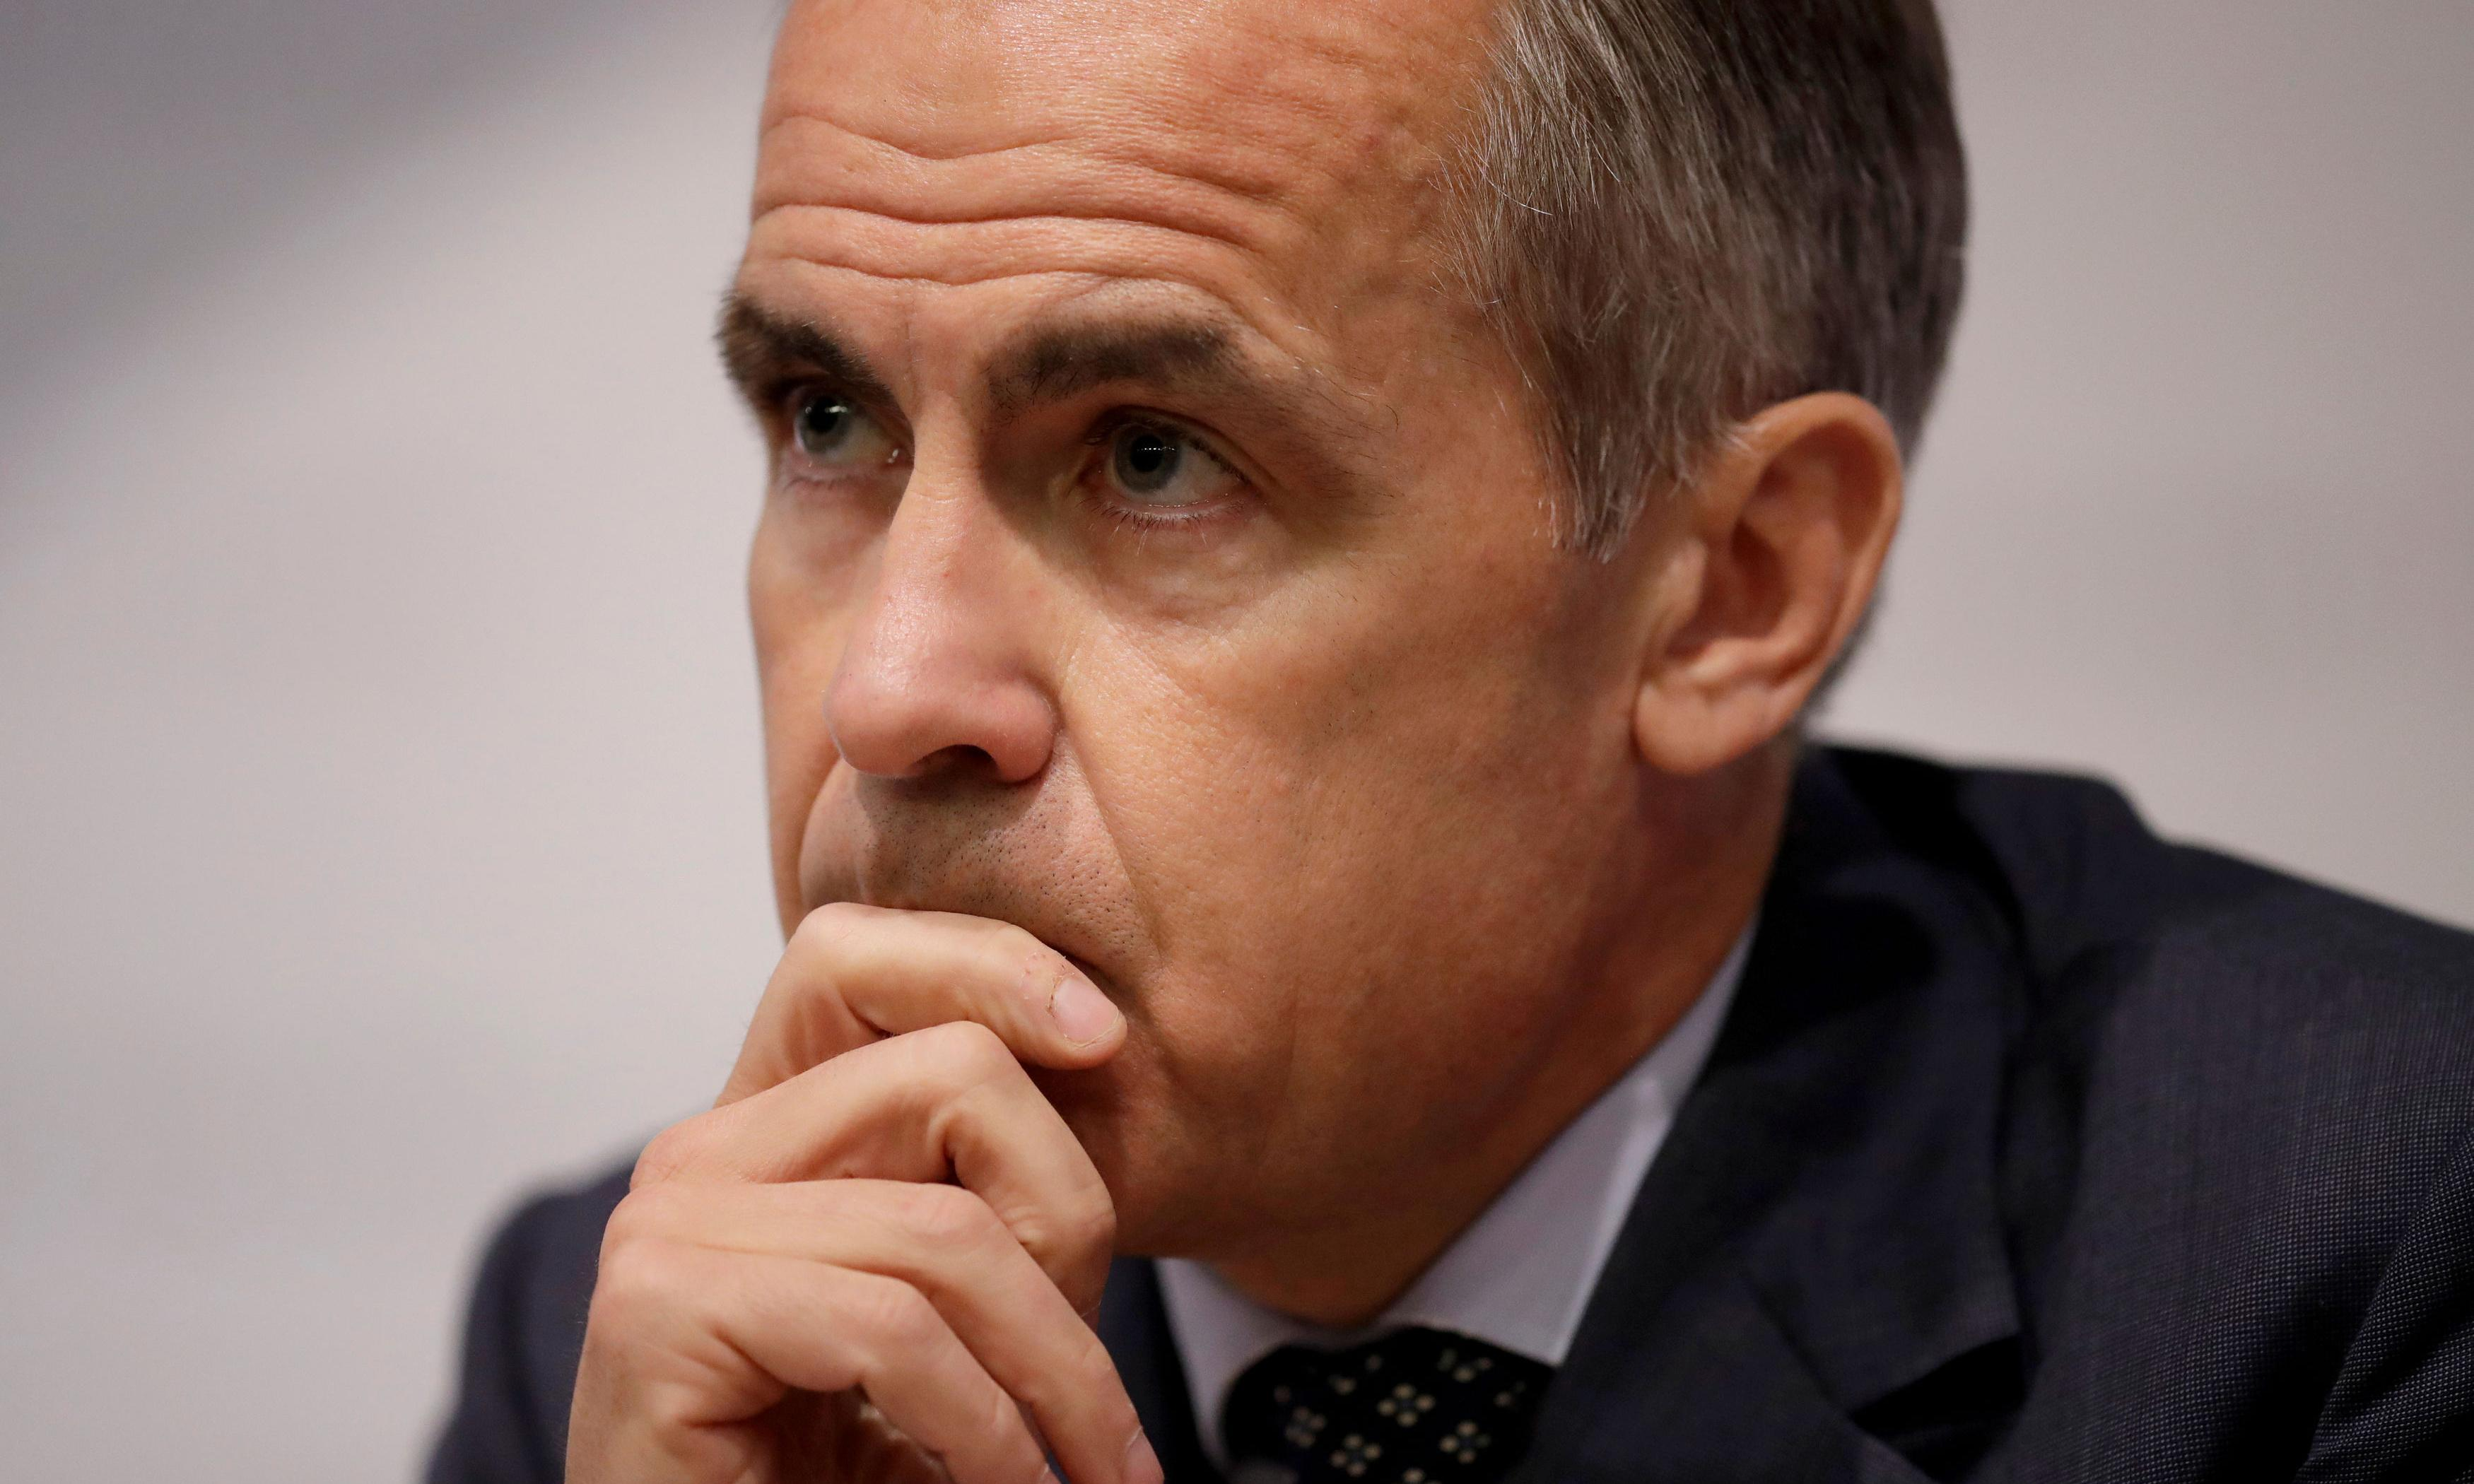 Exclusion of no deal from analysis renders BoE's projections uncertain